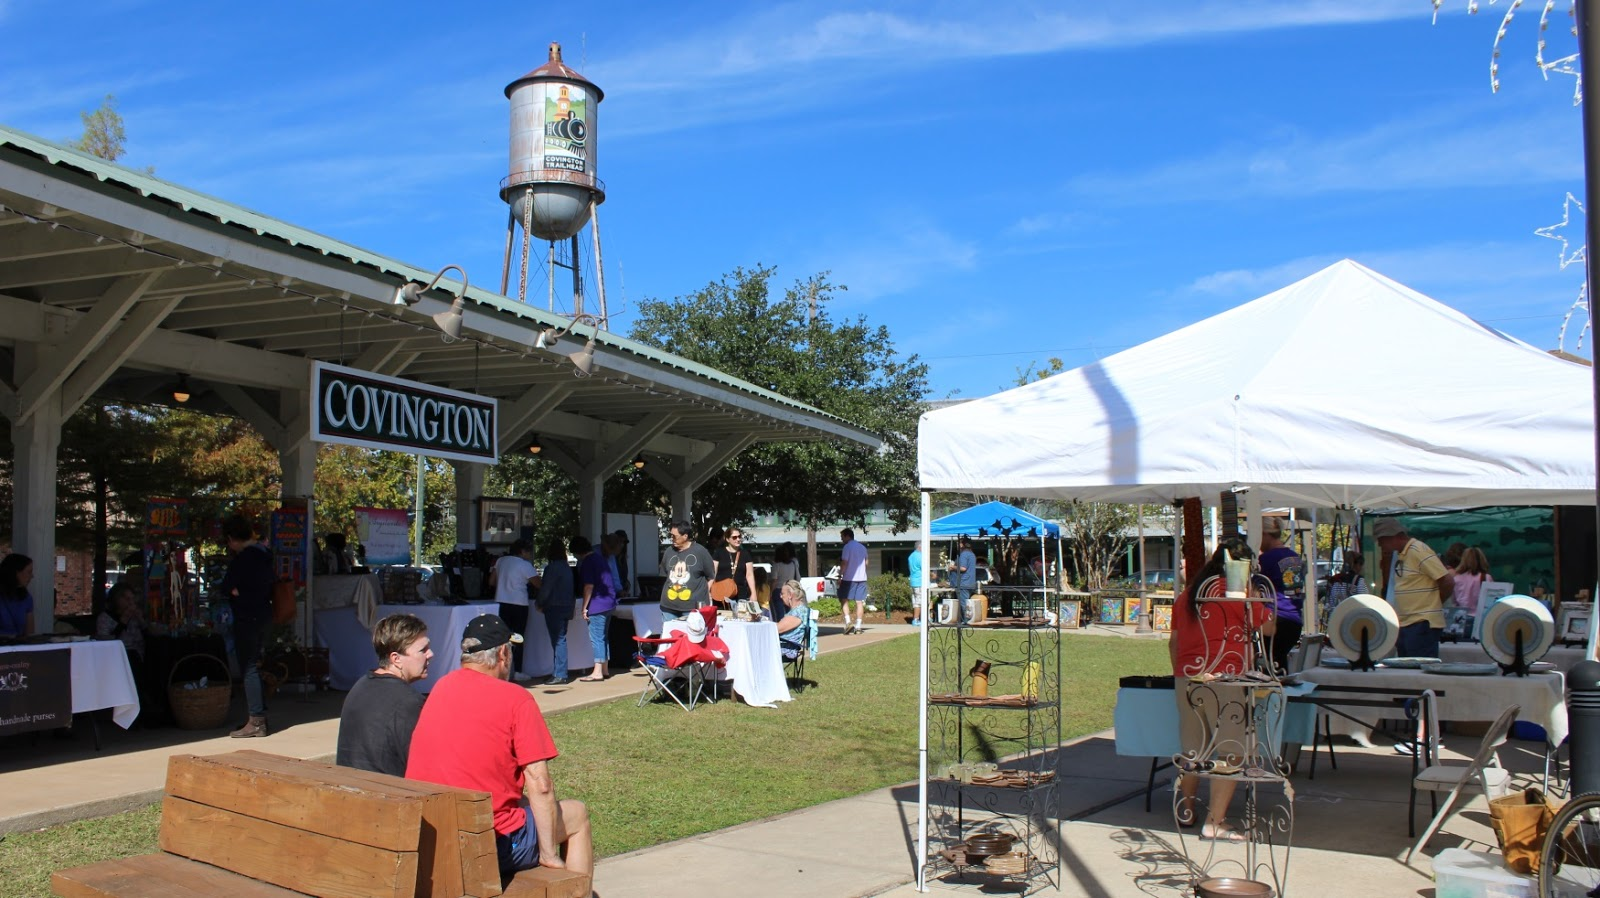 Tammany family covington art market nov 5 2016 for The covington